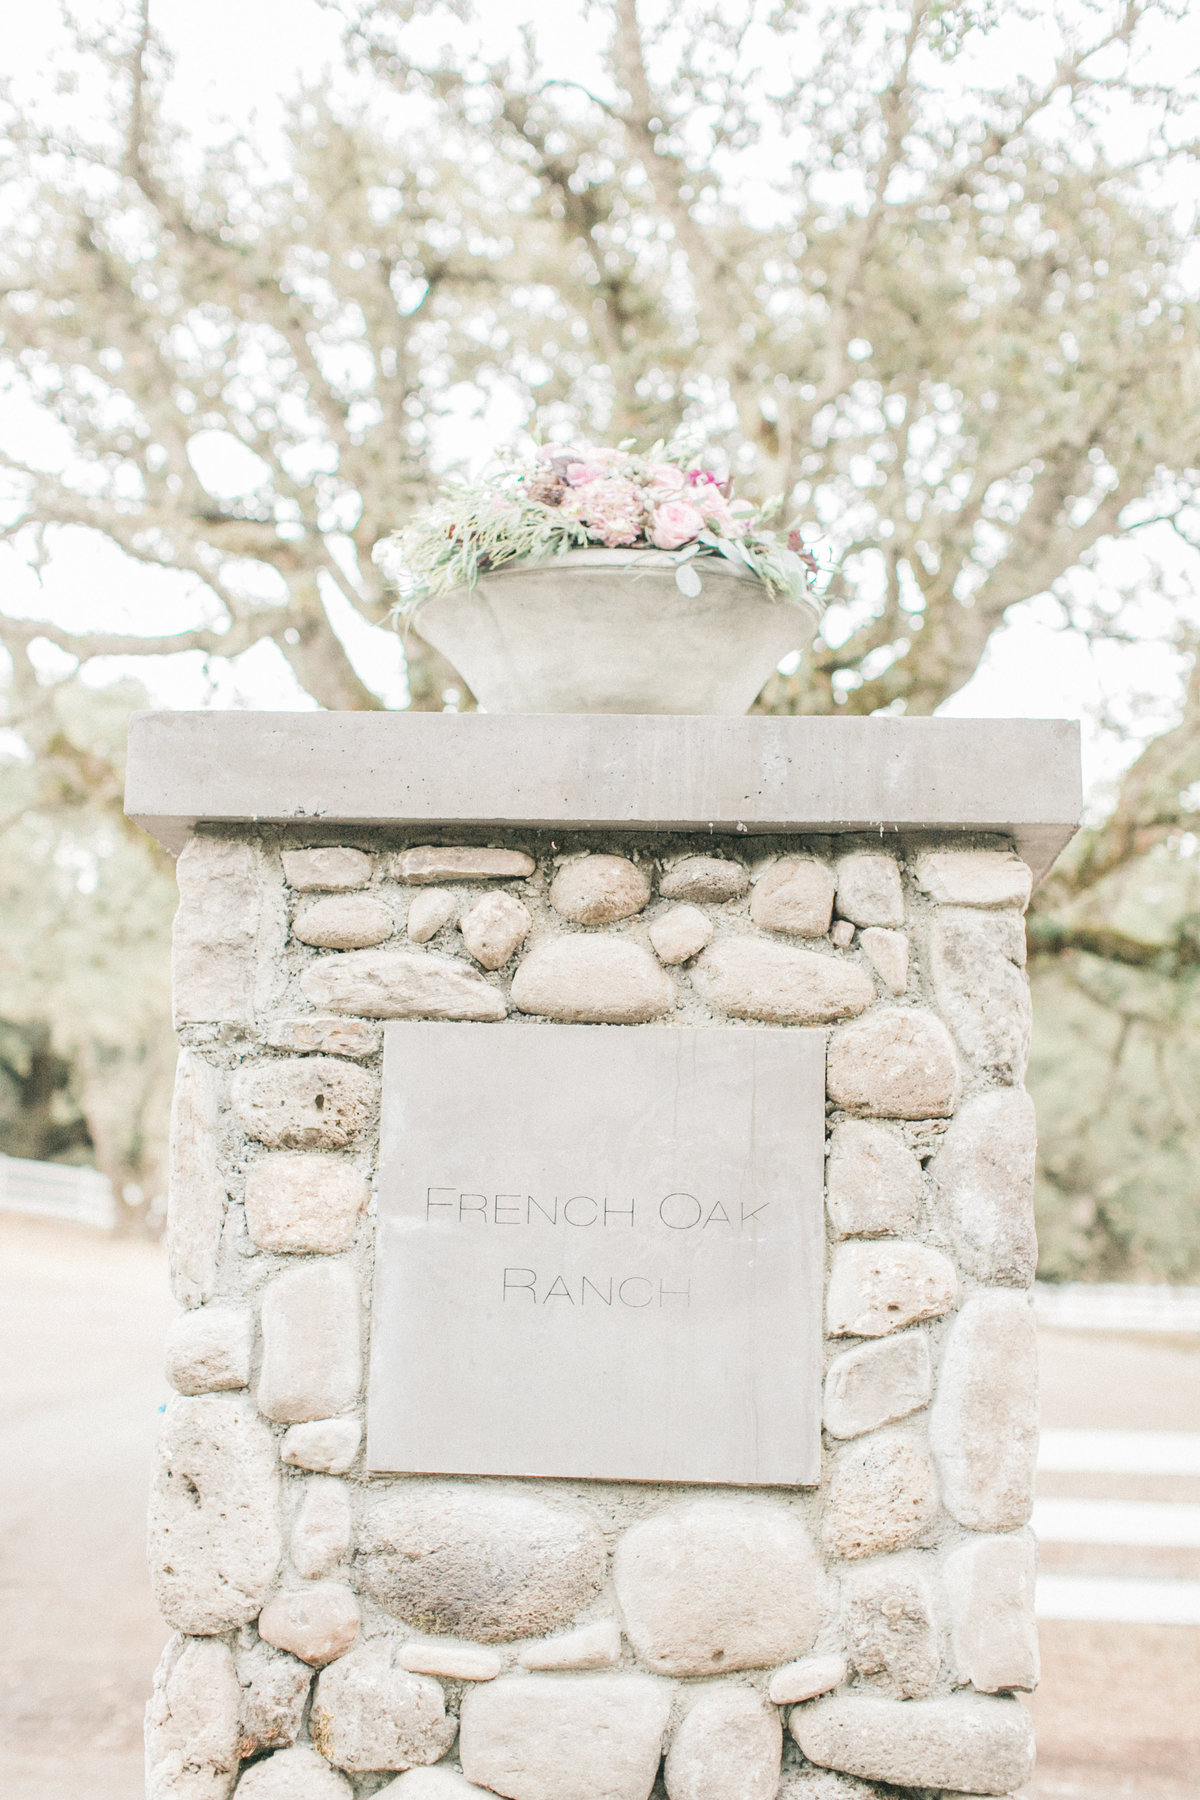 French Oak Ranch Entrance